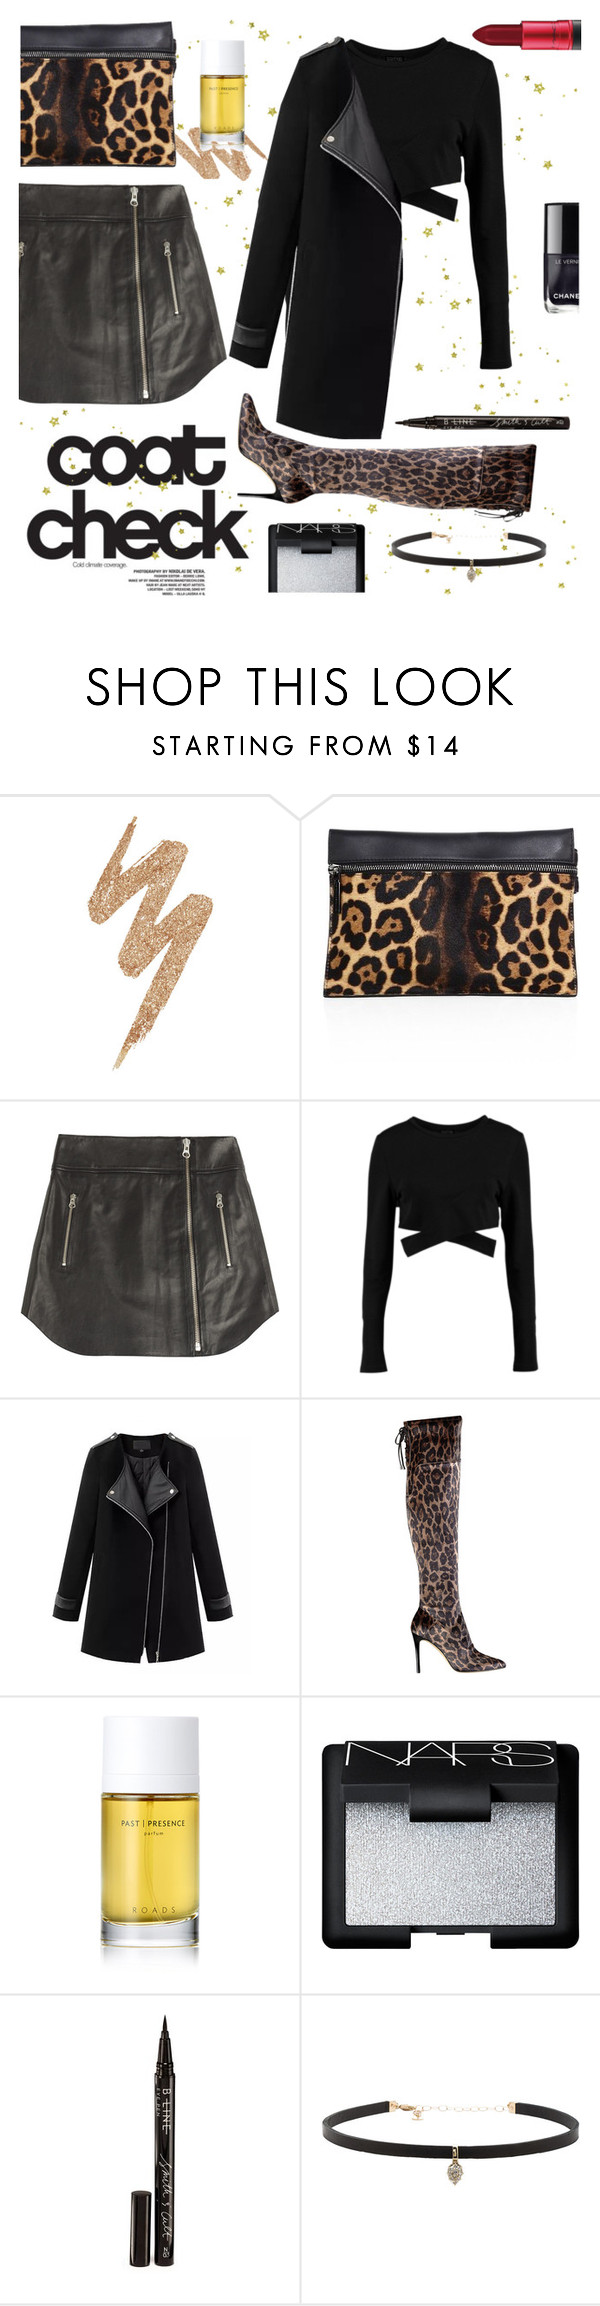 """Leopard Contest"" by ashleymmck ❤ liked on Polyvore featuring Urban Decay, Victoria Beckham, McQ by Alexander McQueen, Boohoo, Chicnova Fashion, GUESS, Roads, NARS Cosmetics, Smith & Cult and Carbon & Hyde"